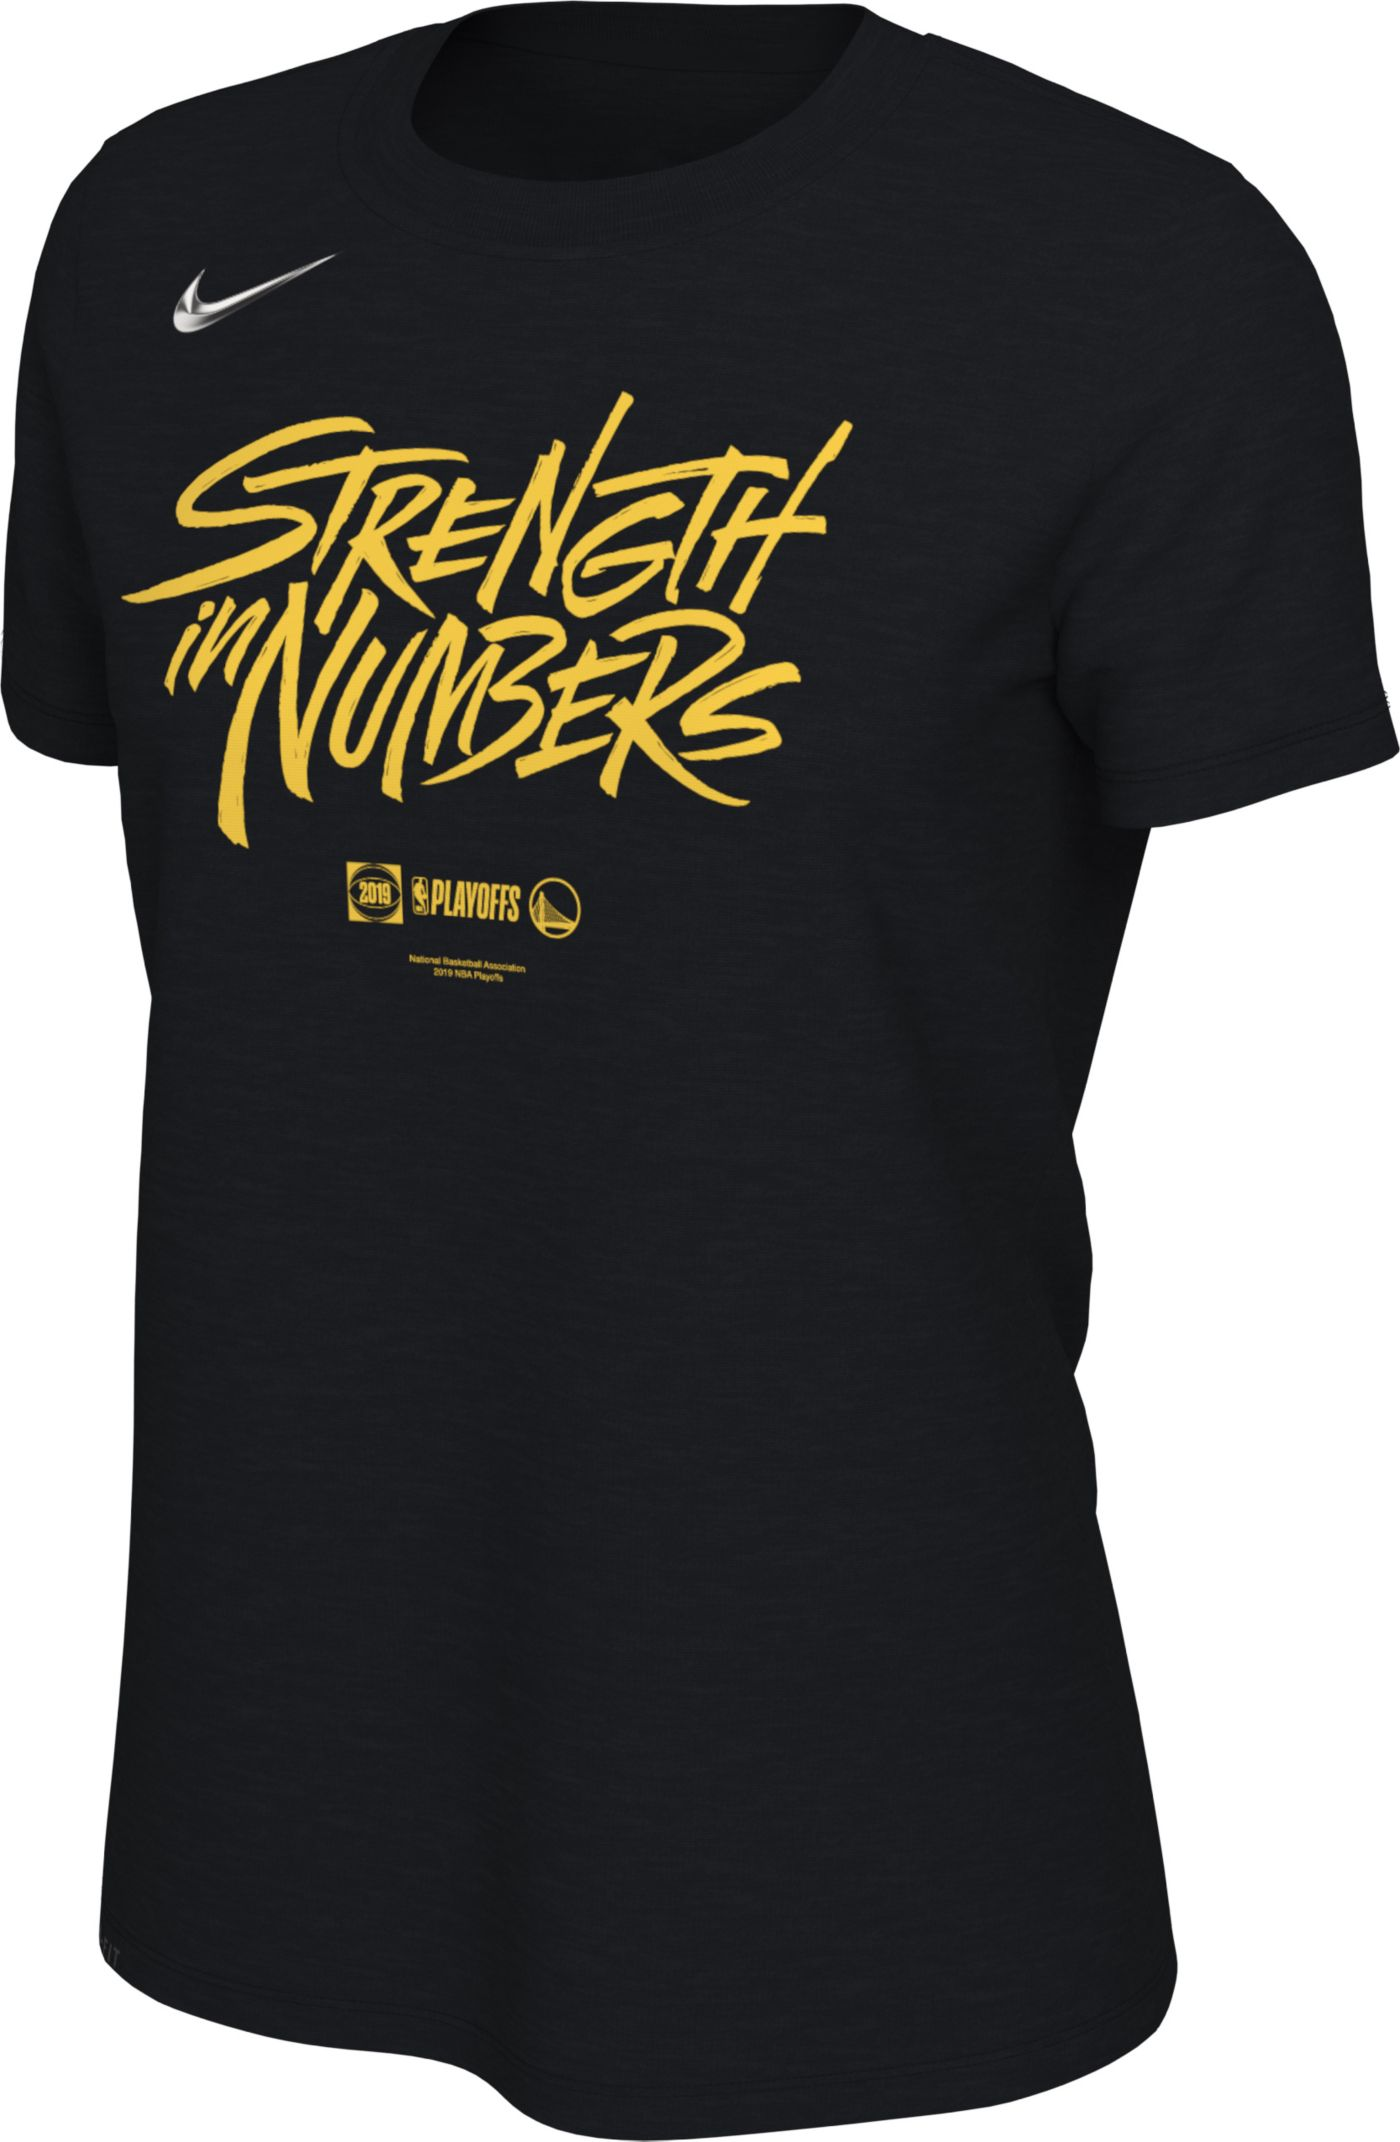 "Nike Women's Golden State Warriors 2019 Playoffs ""Strength In Numbers"" Dri-FIT T-Shirt"